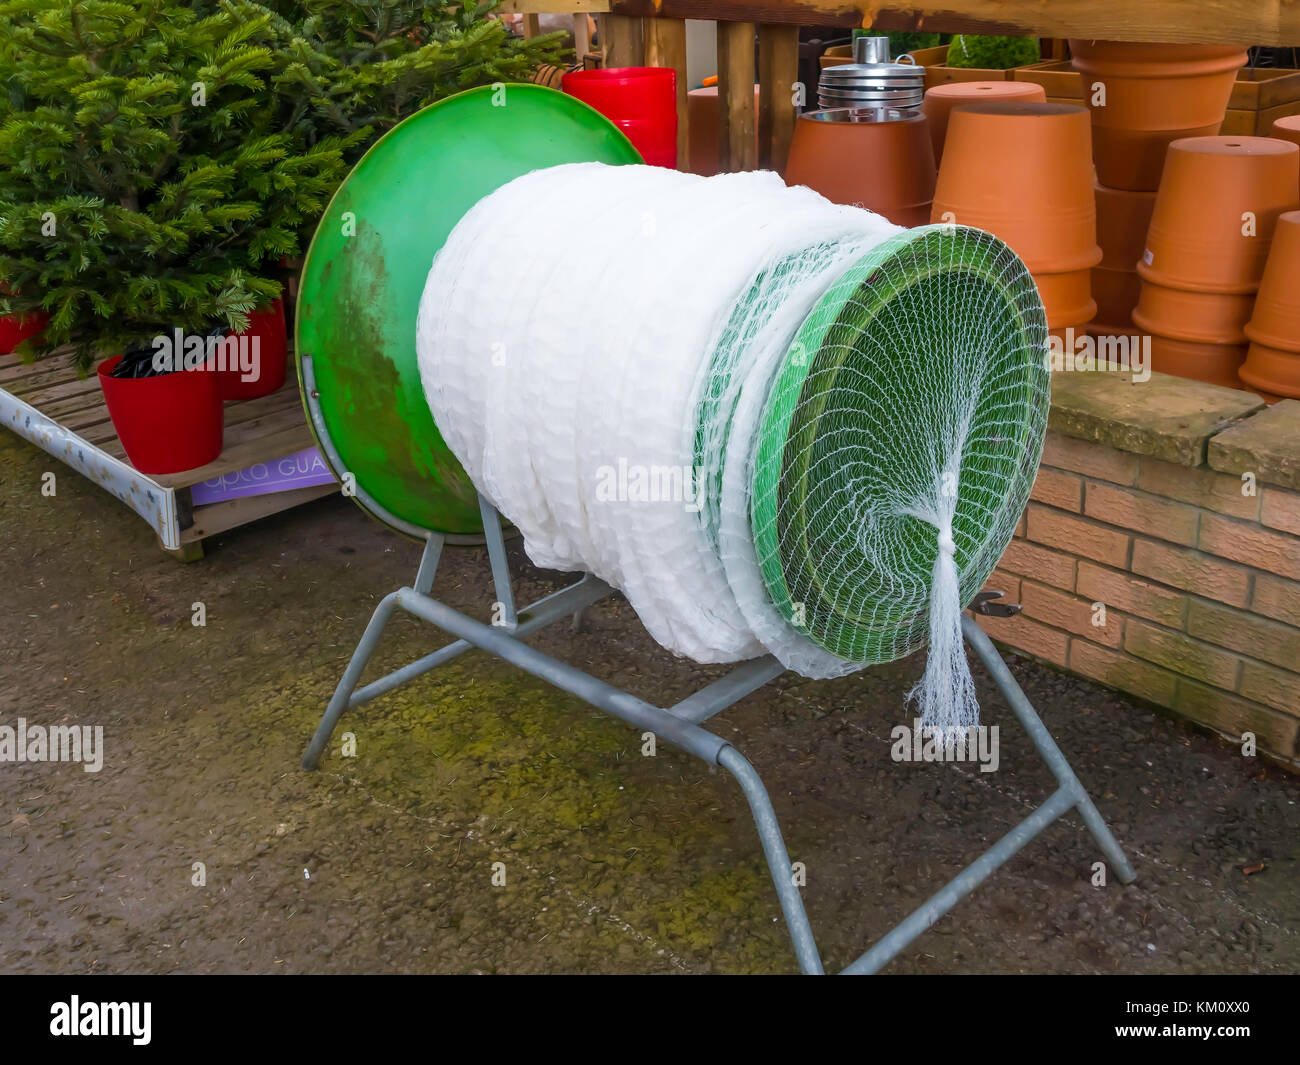 Exceptional A Green Christmas Tree Netting Funnel Ready For Use In A Garden Centre